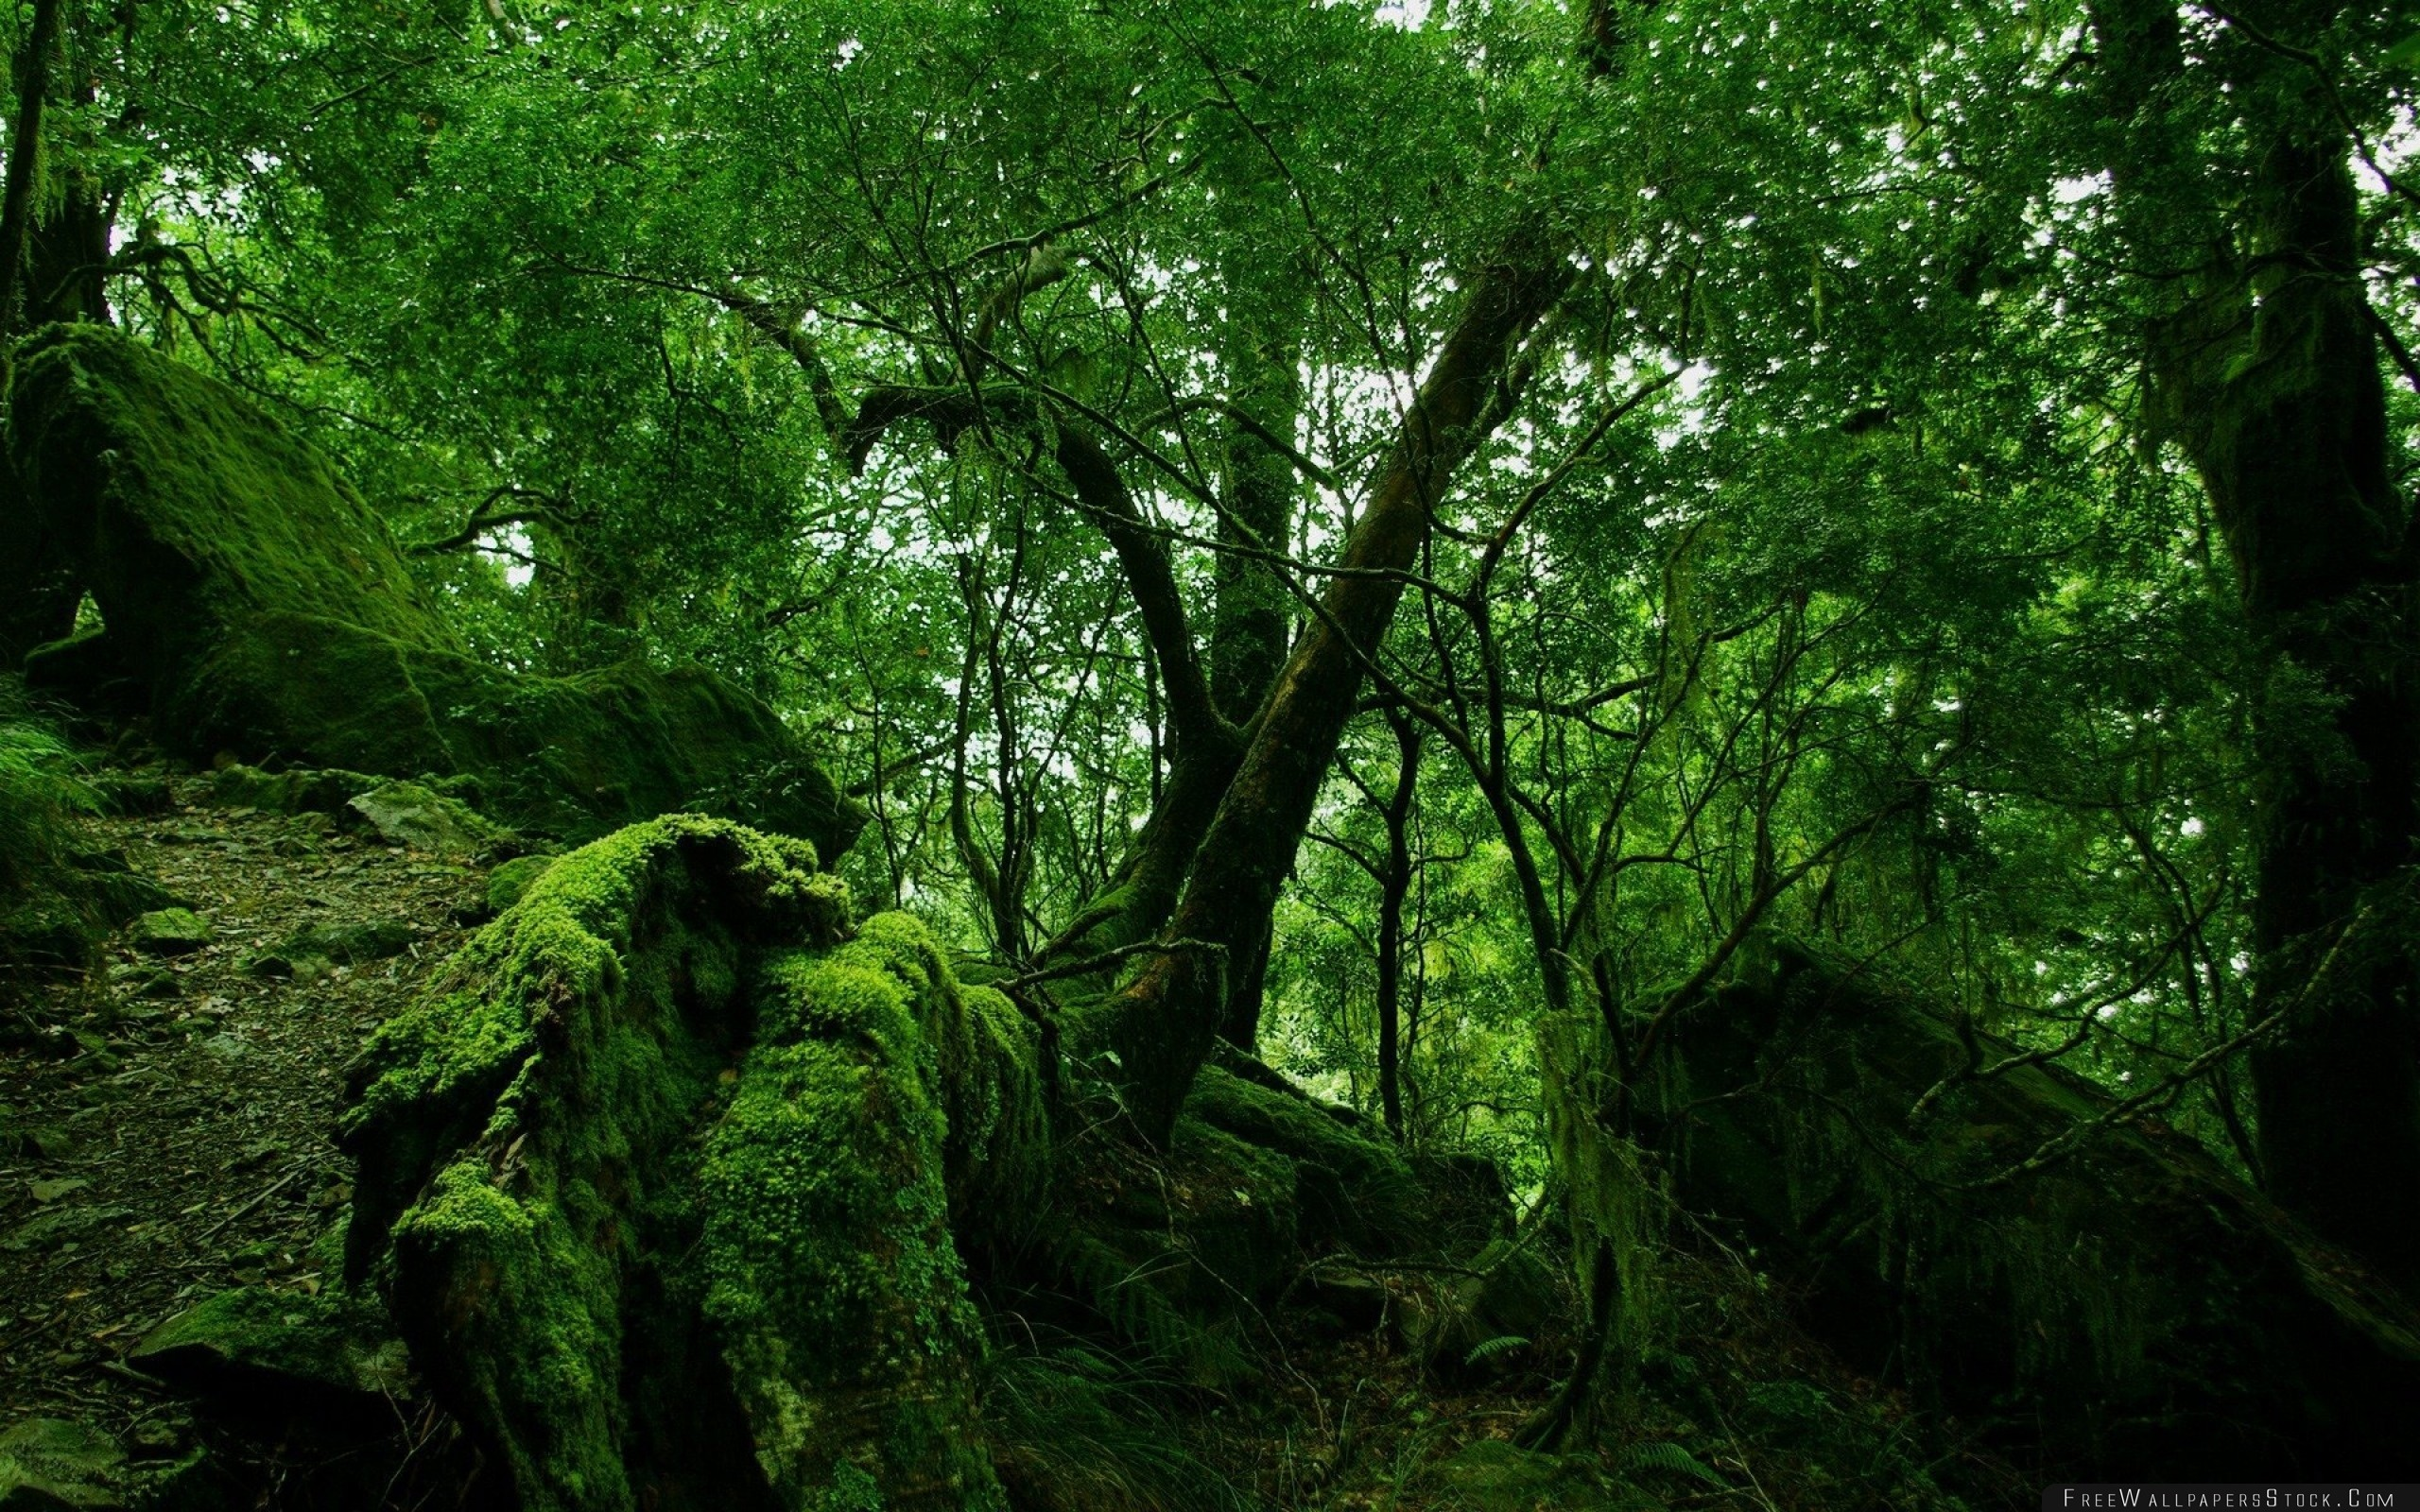 Download Free Wallpaper Wood Trees Thickets Green Moss Vegetation Bushes Stones Leaves